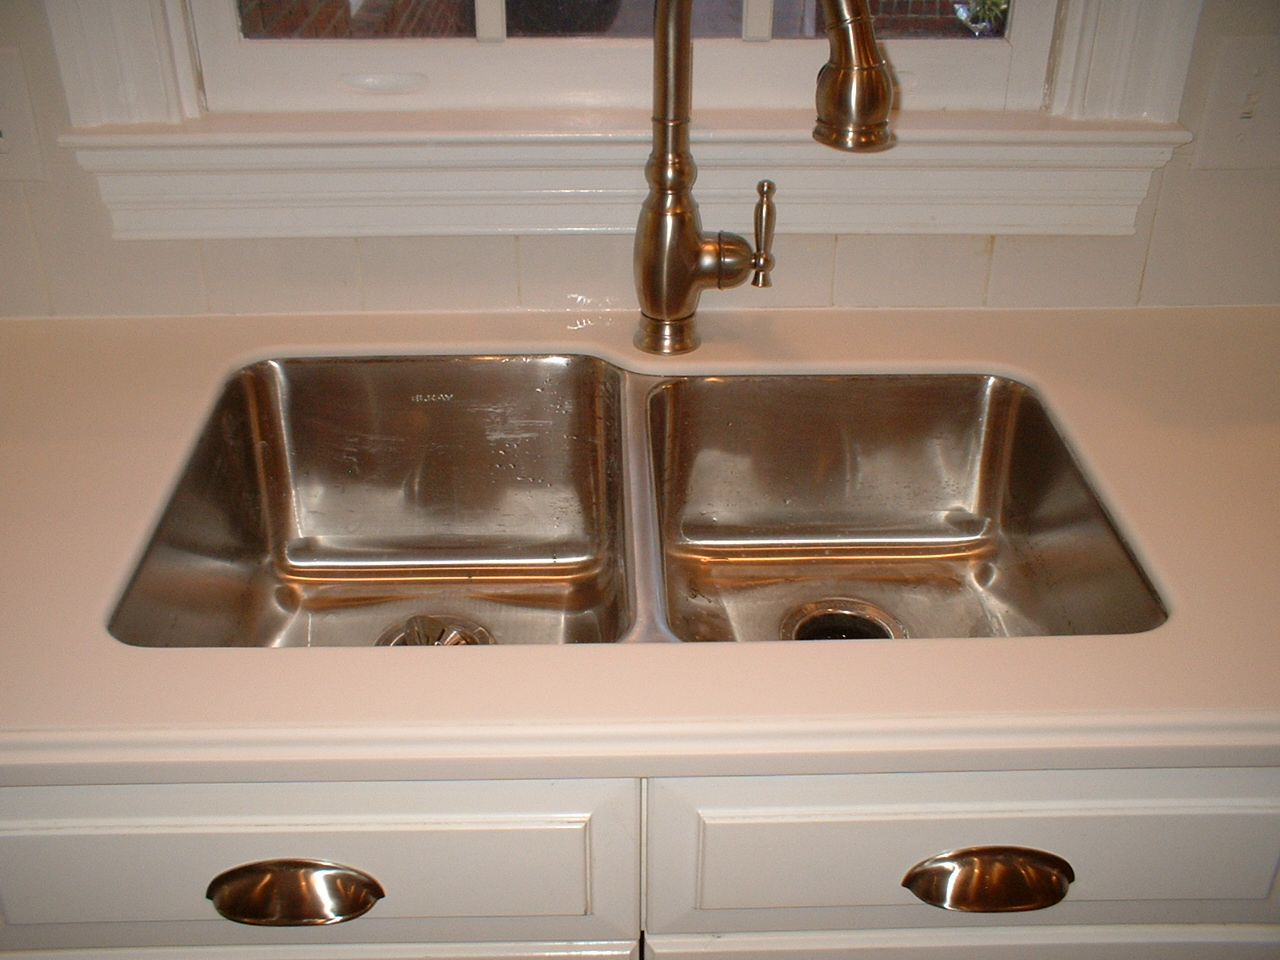 Stainless Steel Sink Refinishing Bathtub Reglazing Honolulu Oahutub Com Stainless Steel